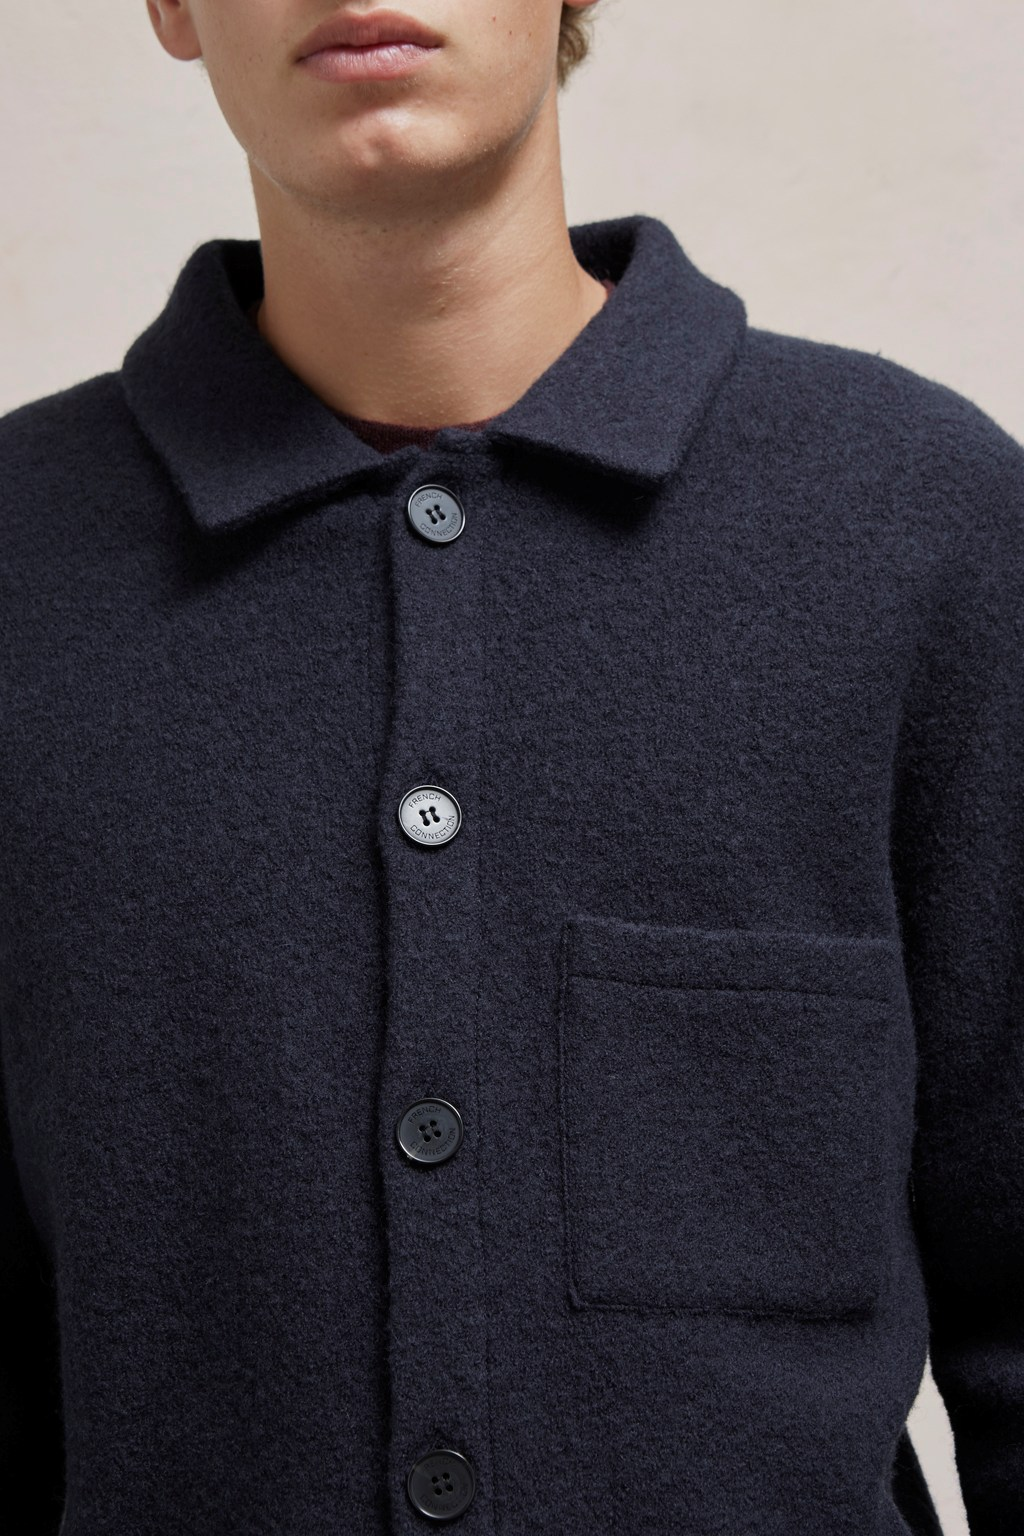 Boiled Wool Shirt Jacket Mens Polo Shirts French Connection Usa